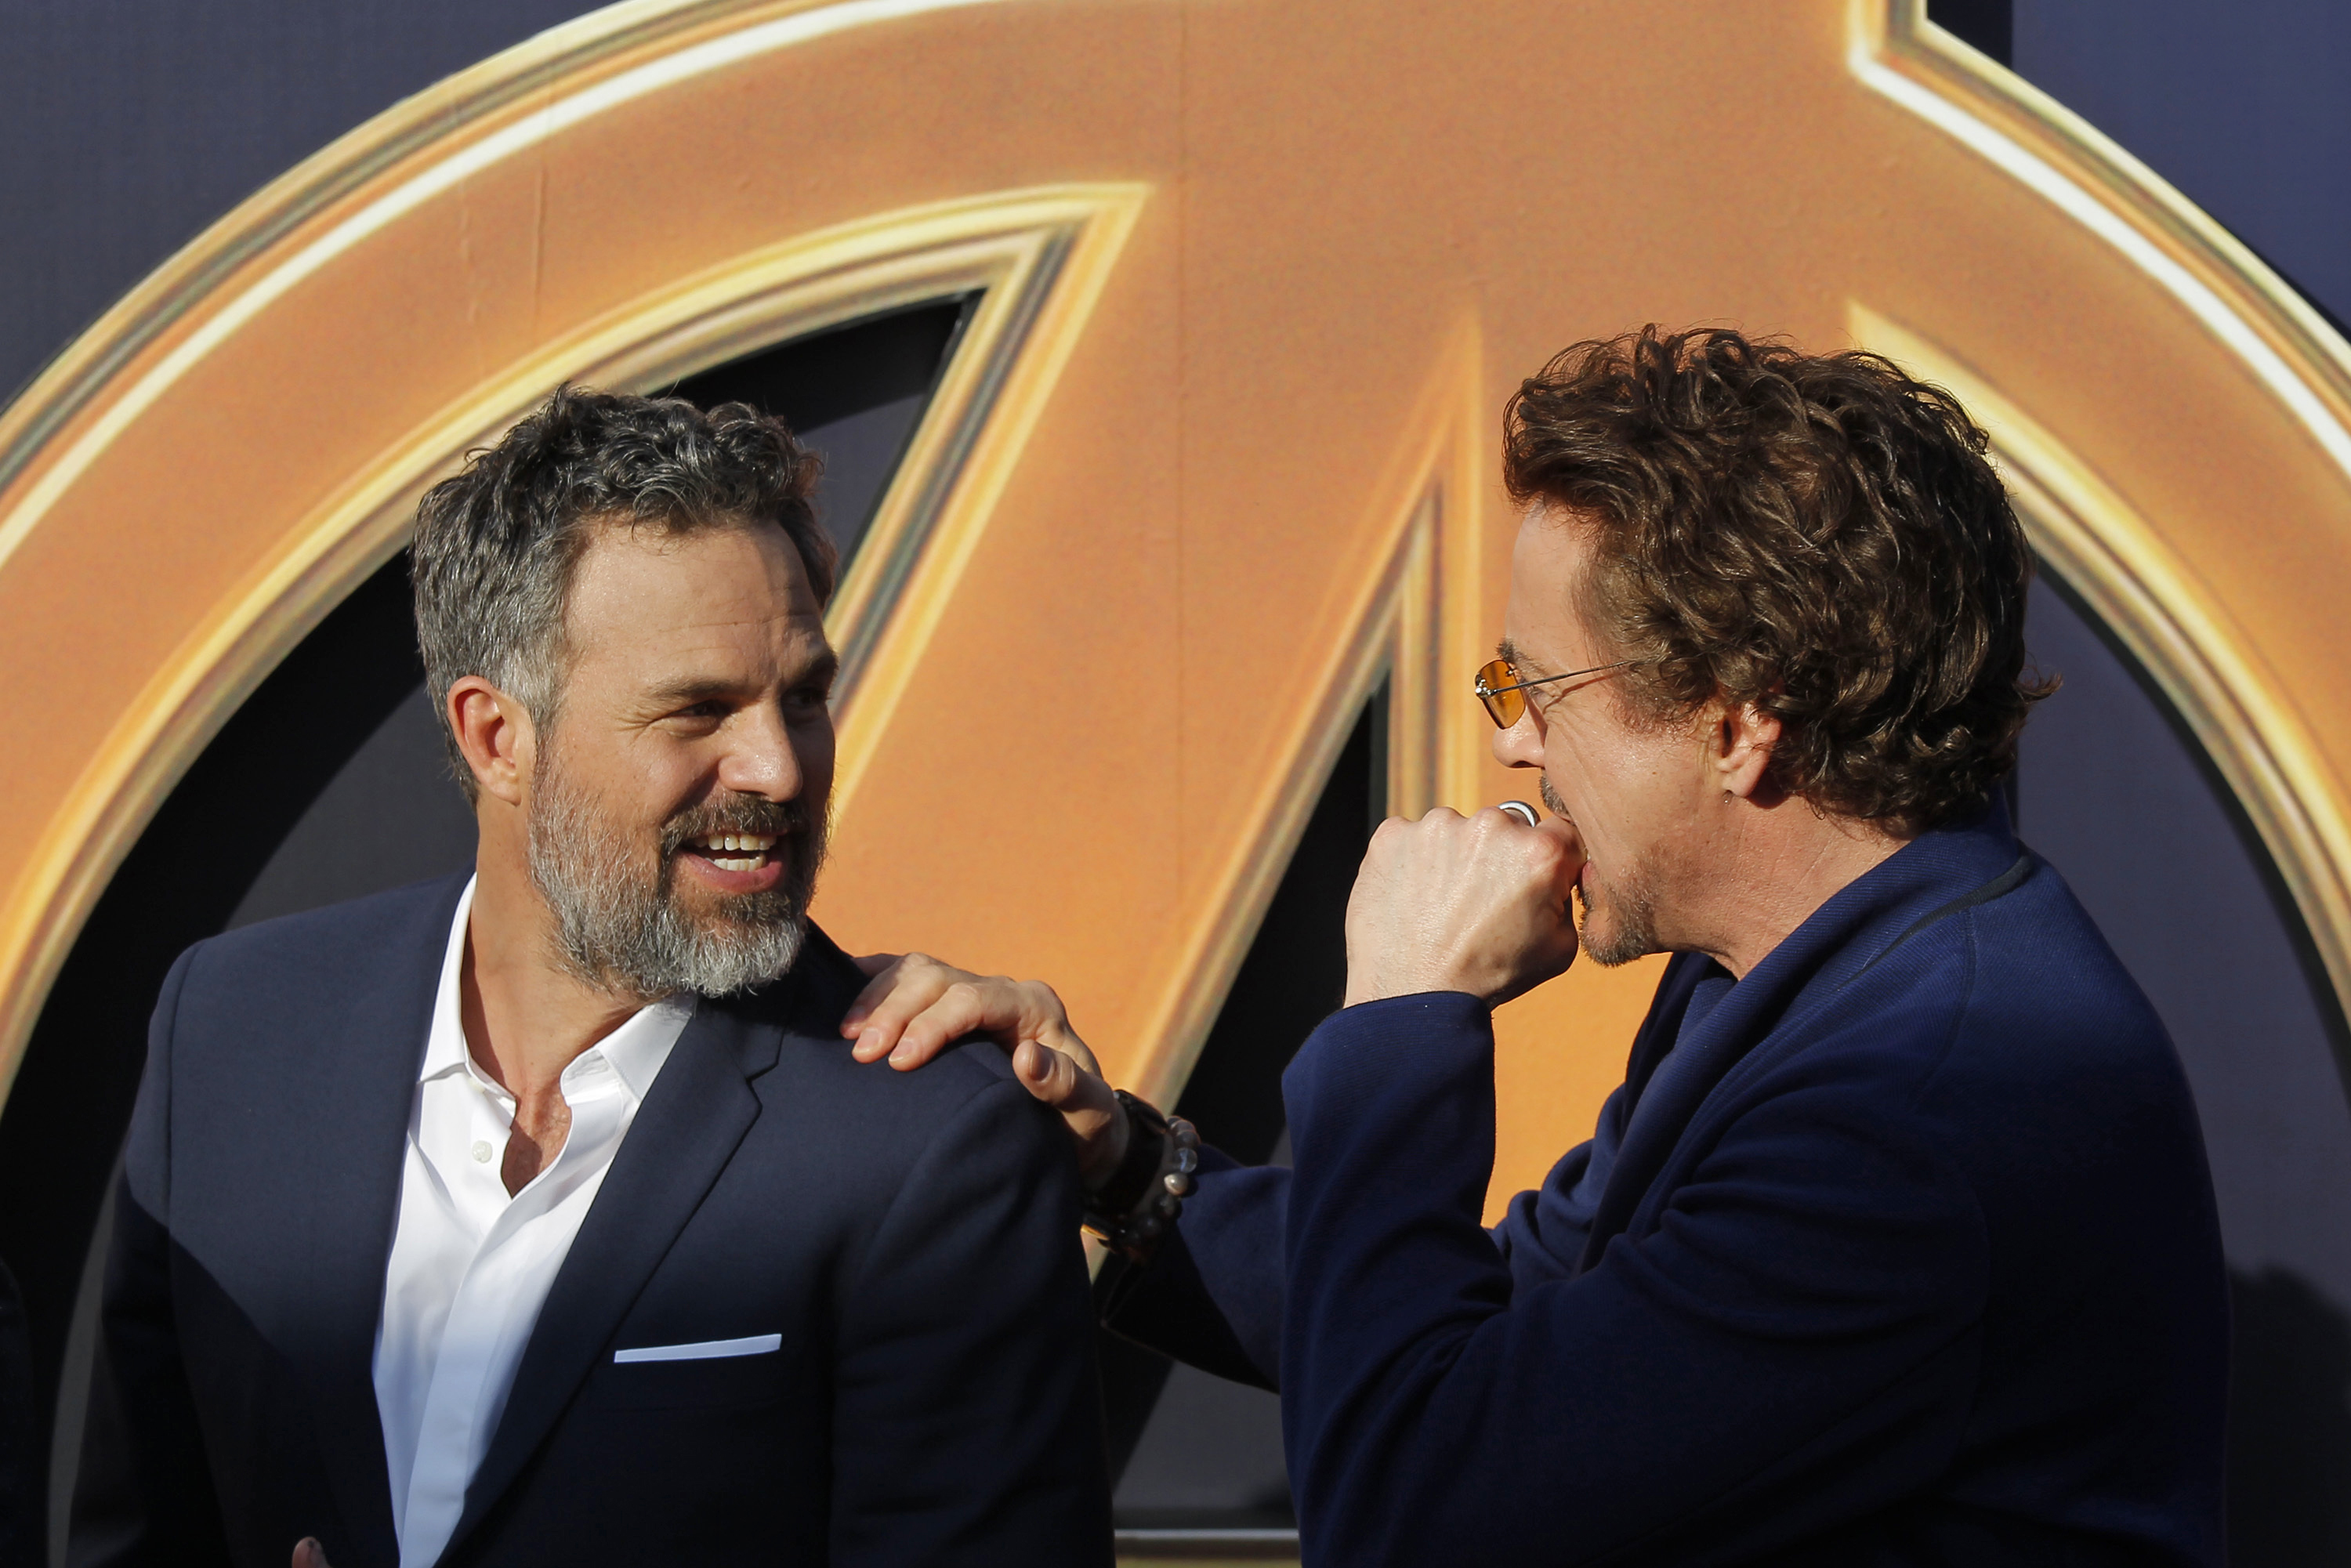 Mark Ruffalo and Robert Downey Jr make up the cast of Avengers: Infinity War (AP)